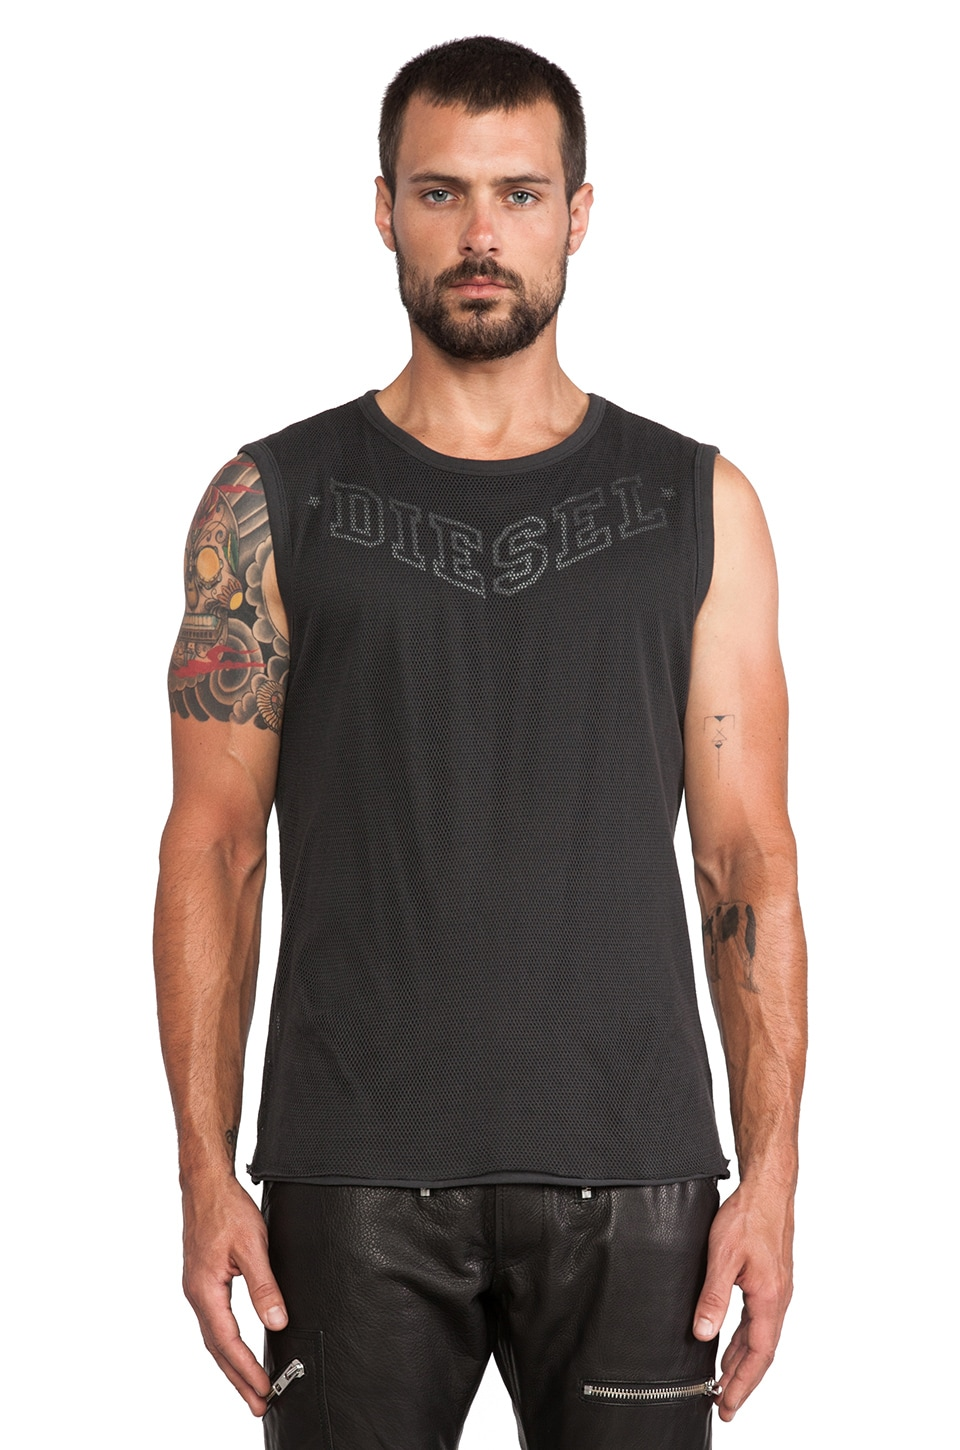 Diesel Ike Muscle Tee in Charcoal